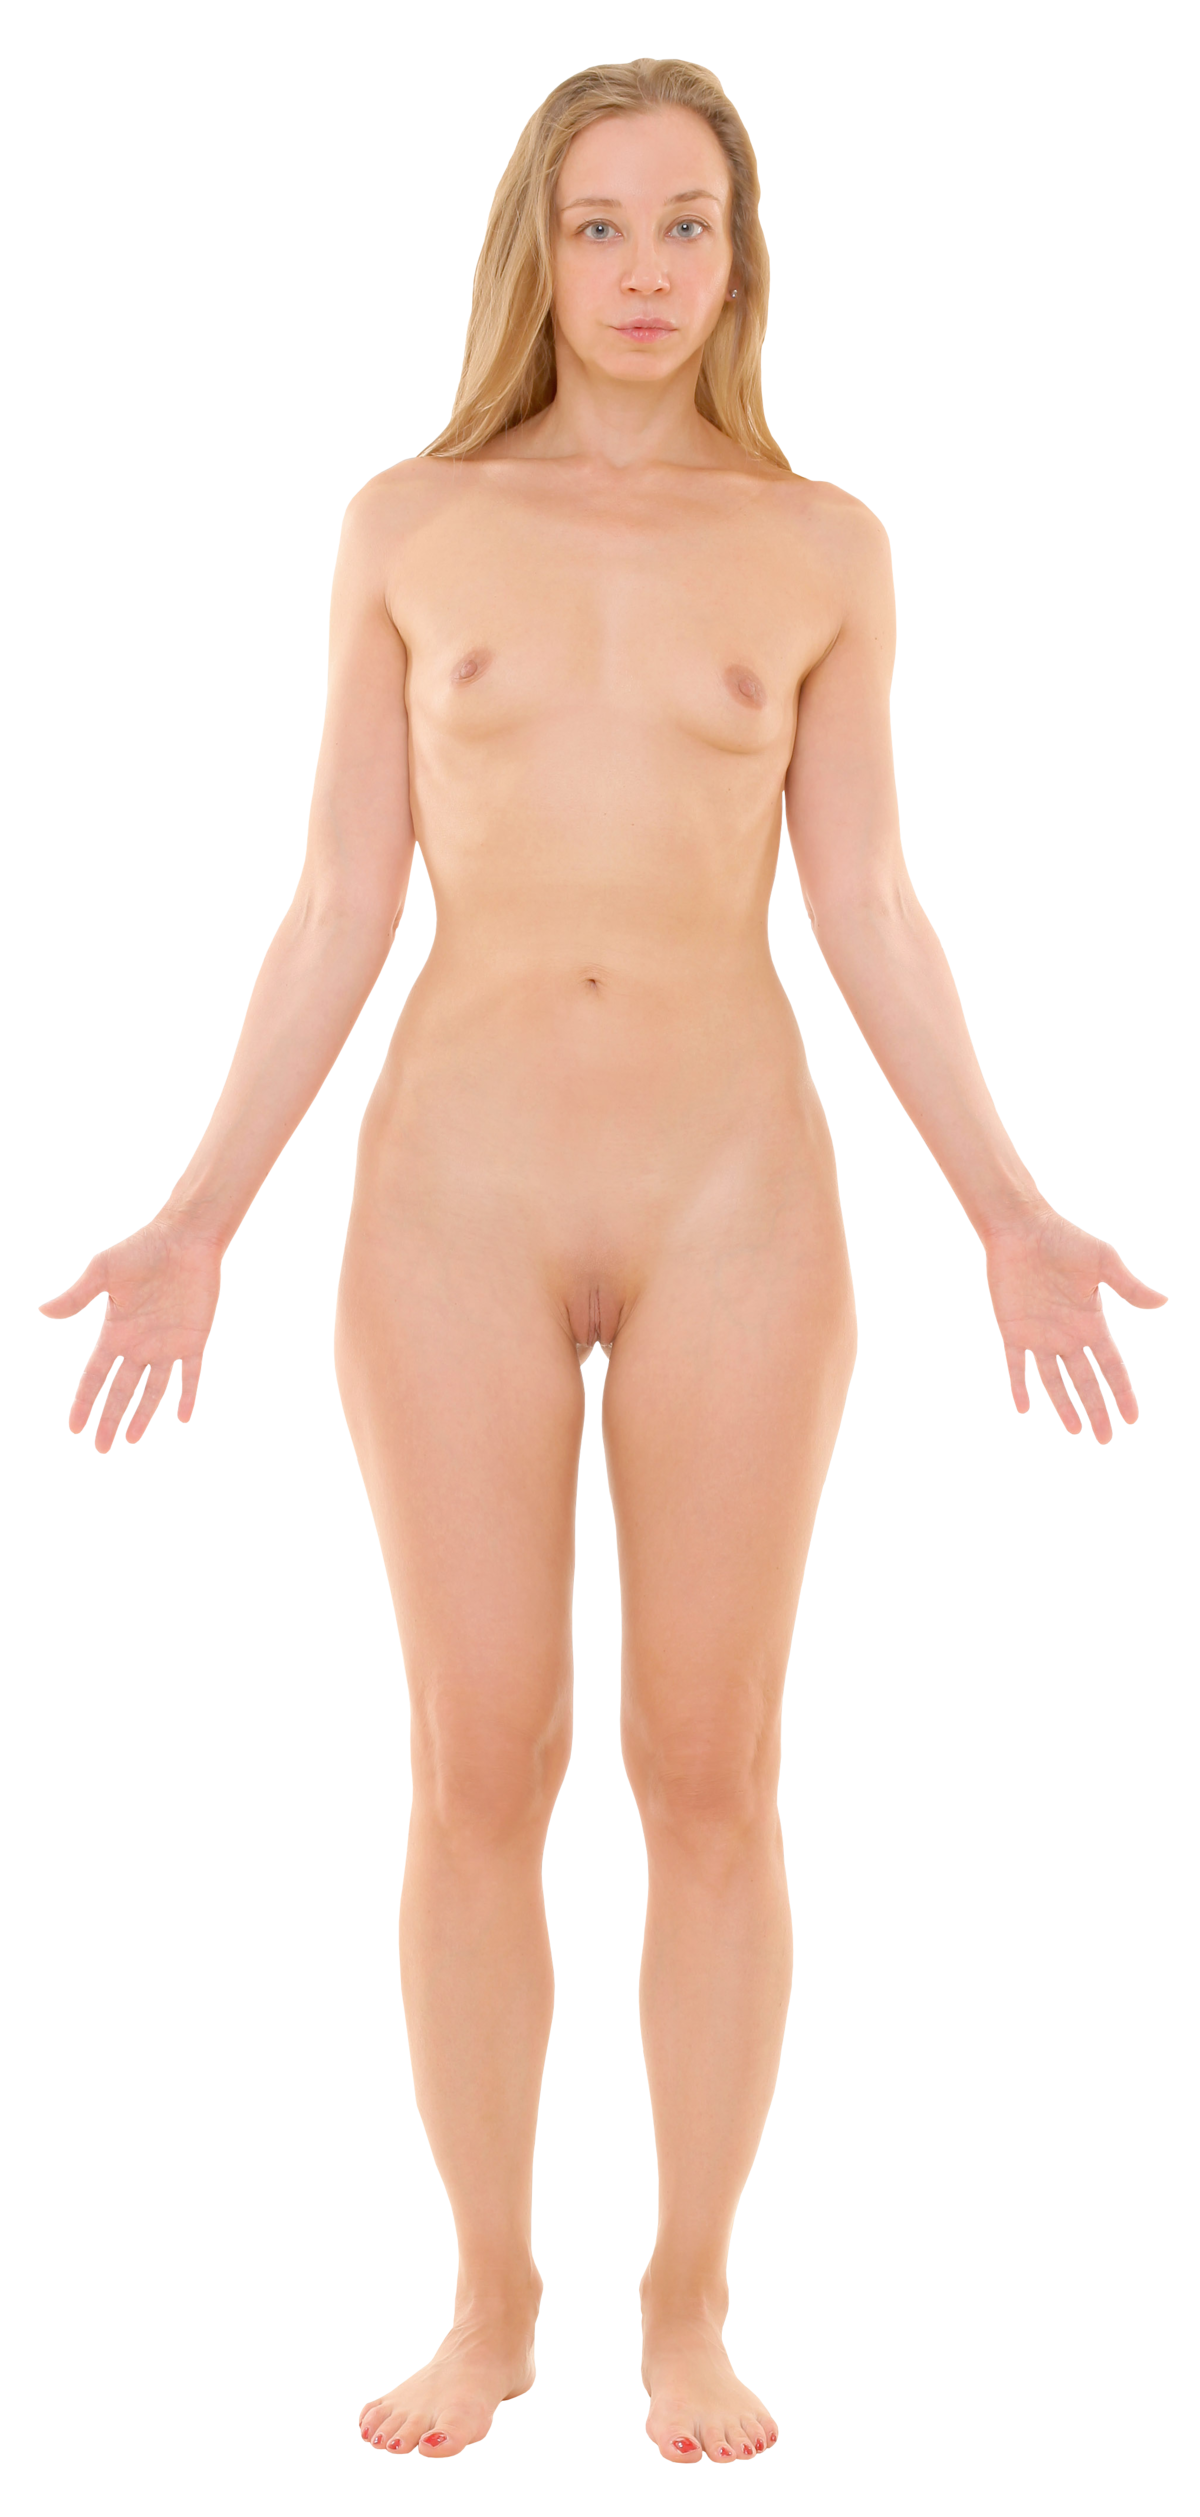 Nudity - Wikipedia-3079